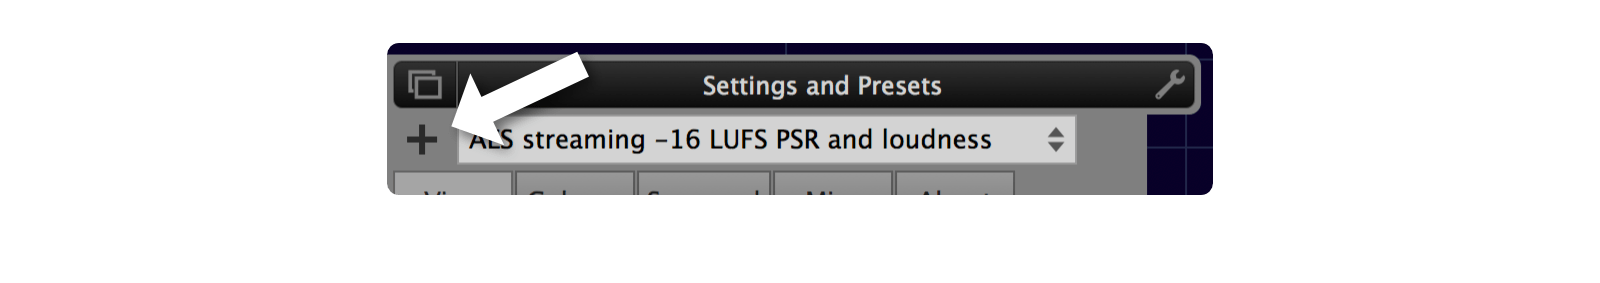 Preset save button